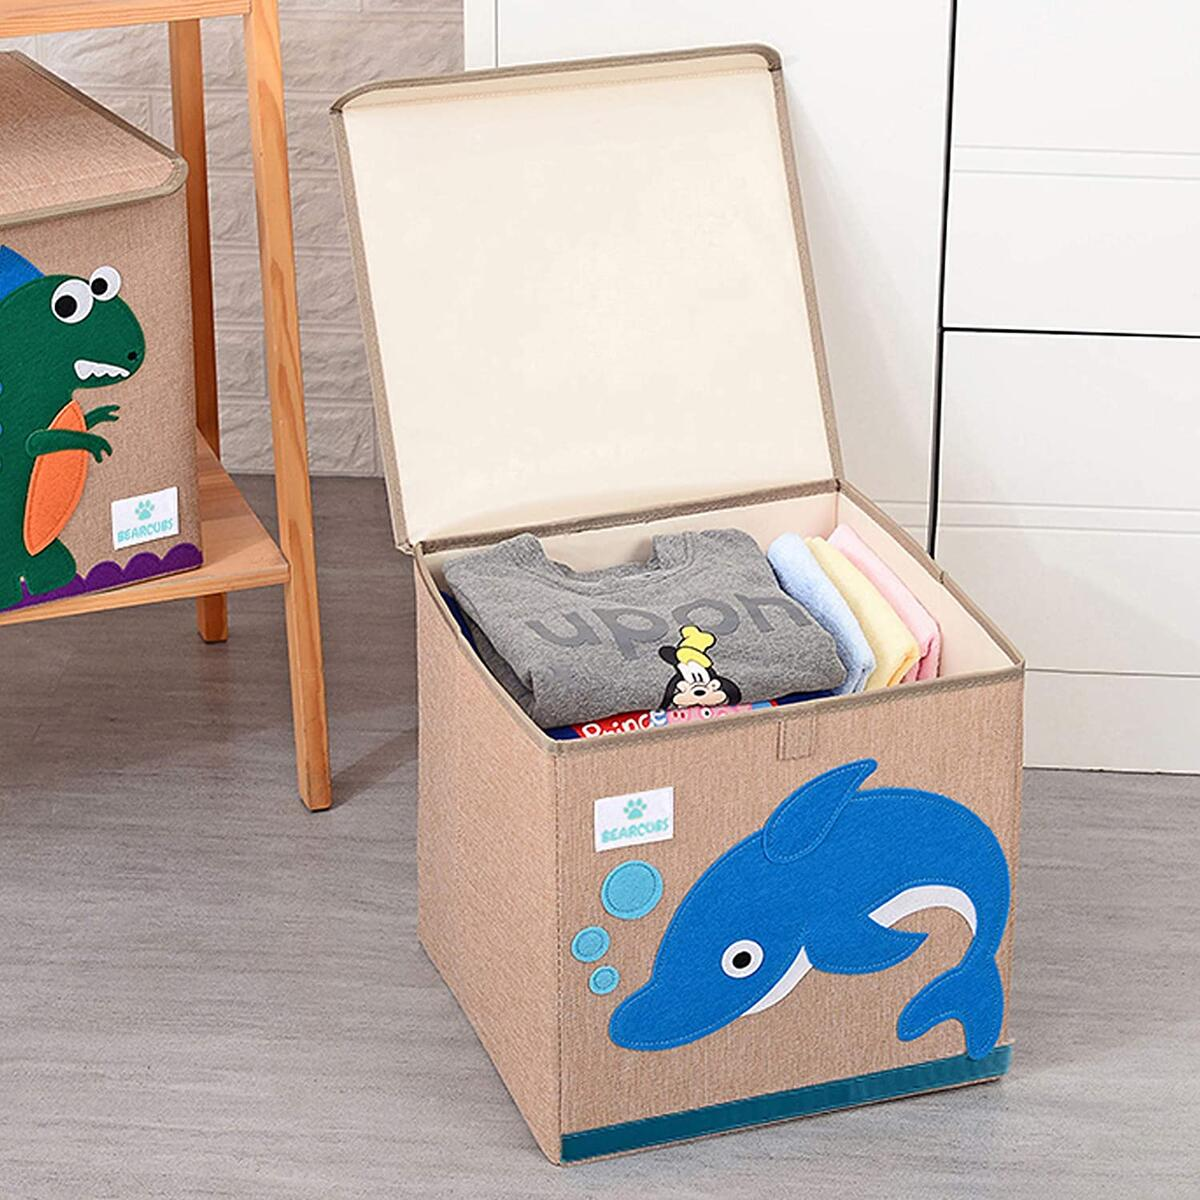 Bearcubs Small Toy Chest Foldable Stackable Storage and Organization Box for Kids - Nursery, Living Room, Playroom - Toy Bin with Lid - Designs for Boys and Girls (Dolphin)